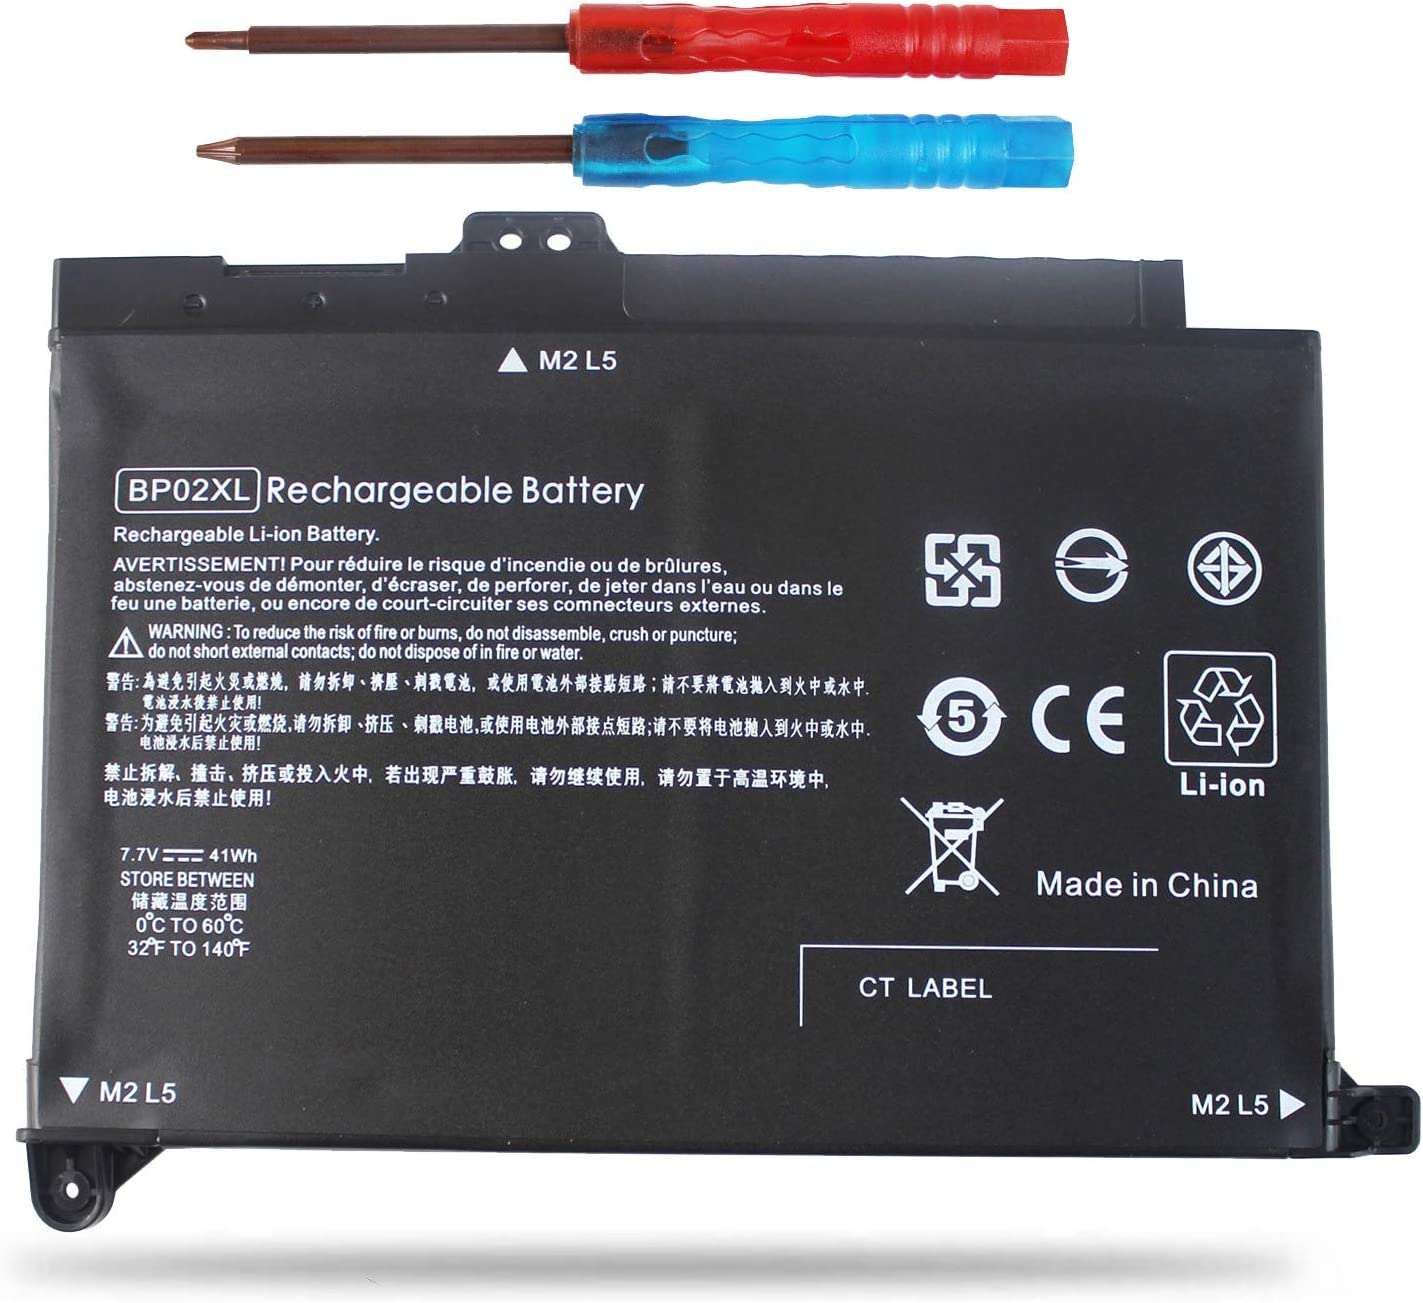 Vinpera BP02XL Laptop Battery for HP Pavilion PC 15 Series 15-AU010WM 15-AU123CL 15-AW002LA 15-aw004 15-AW053NR fit BP02041XL 849569-421 849909-850 849909-855 HSTNN-LB7H -[Three Months Refund]